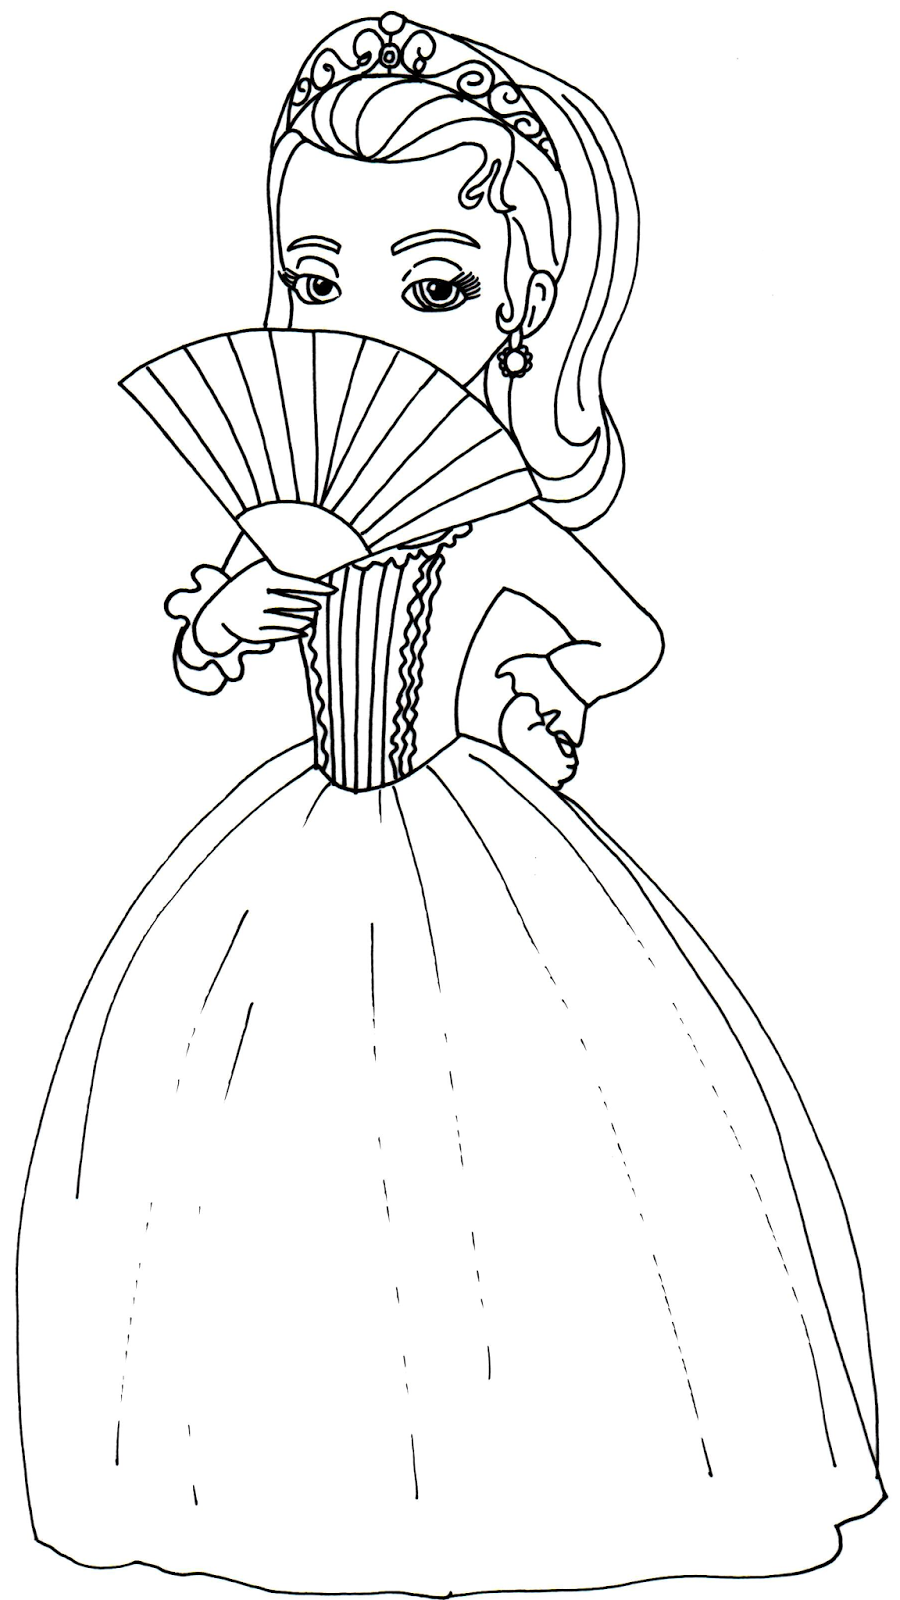 Sofia The First Coloring Pages Amber Disney Coloring Pages Printables Disney Princess Coloring Pages Coloring Books